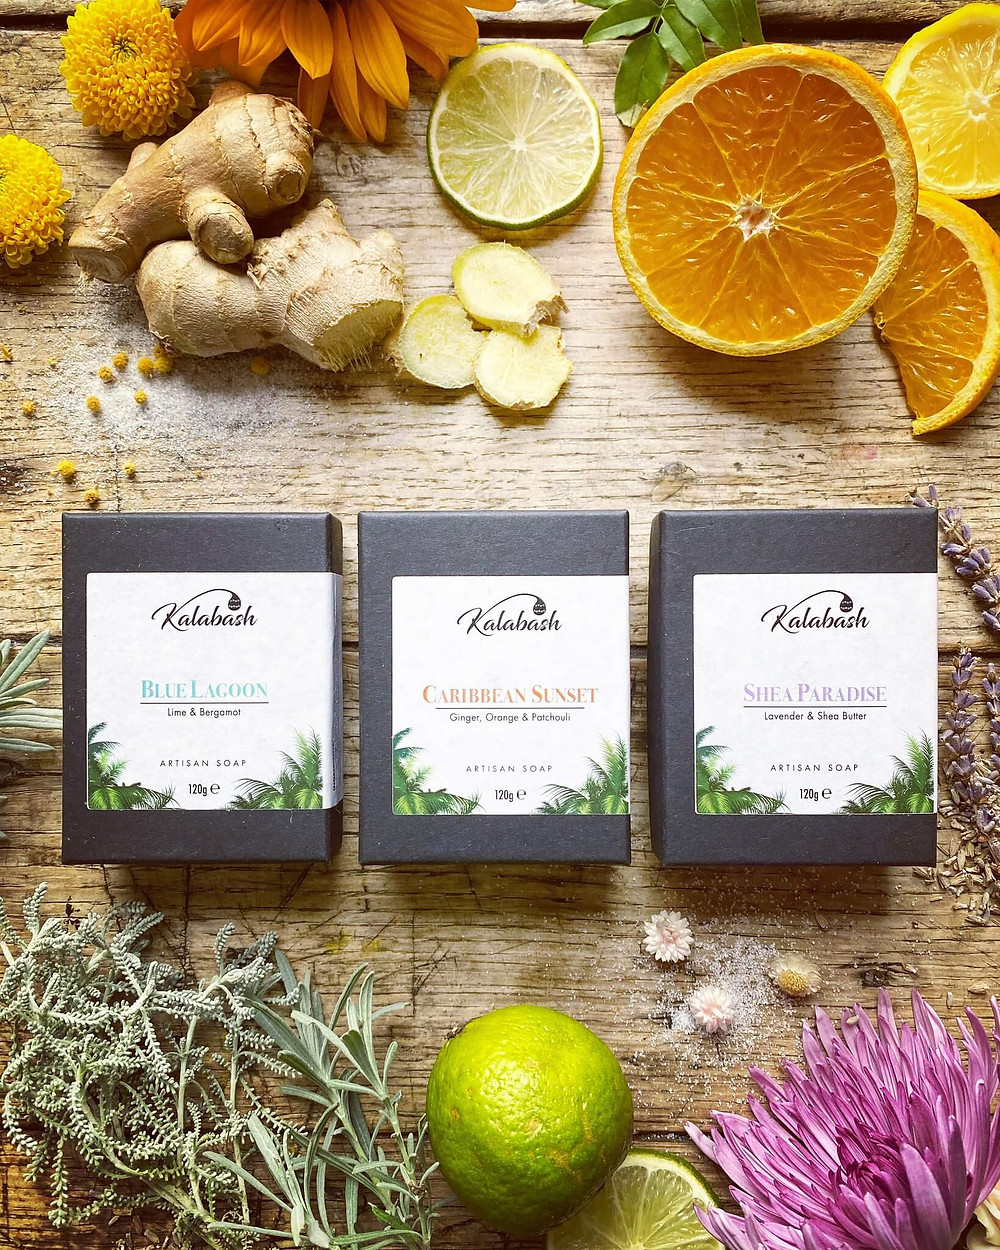 Boxed soap bars by Kalabash Bodycare flatly on wooden table with ginger, orange & lime slices, flowers and herbs including calendula and lavender